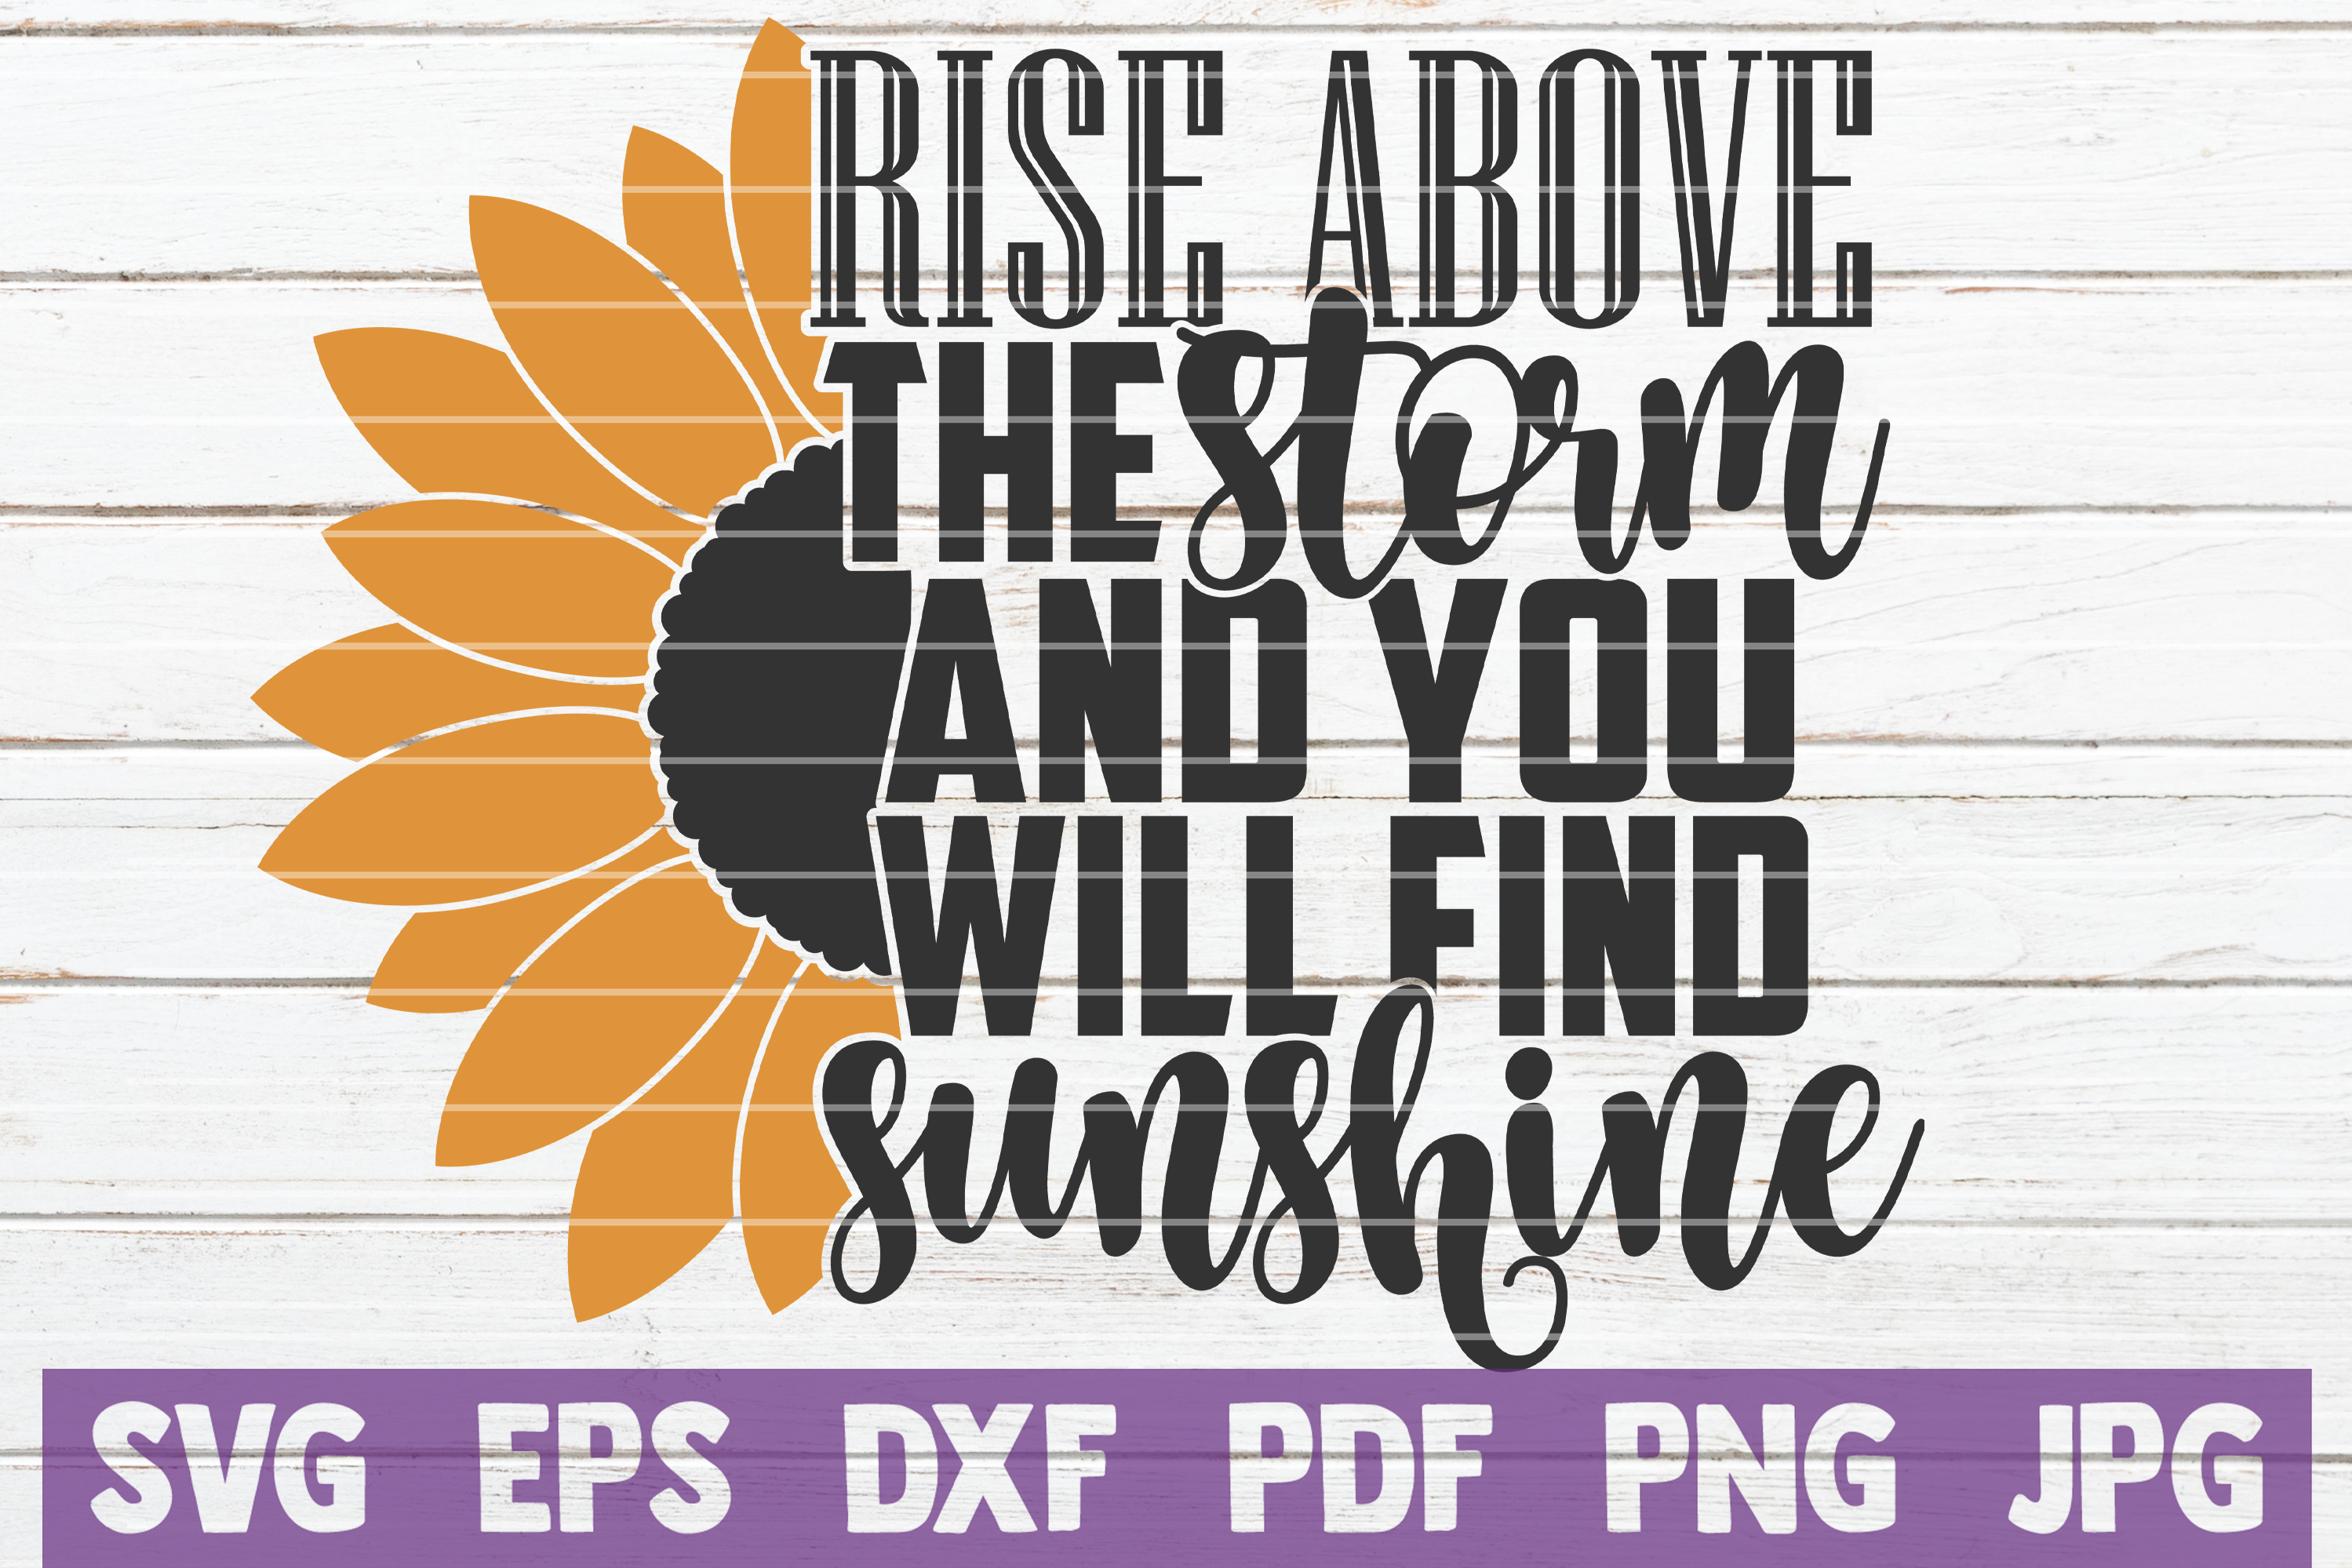 Download Free Rise Above The Storm And Find Sunshine Graphic By for Cricut Explore, Silhouette and other cutting machines.